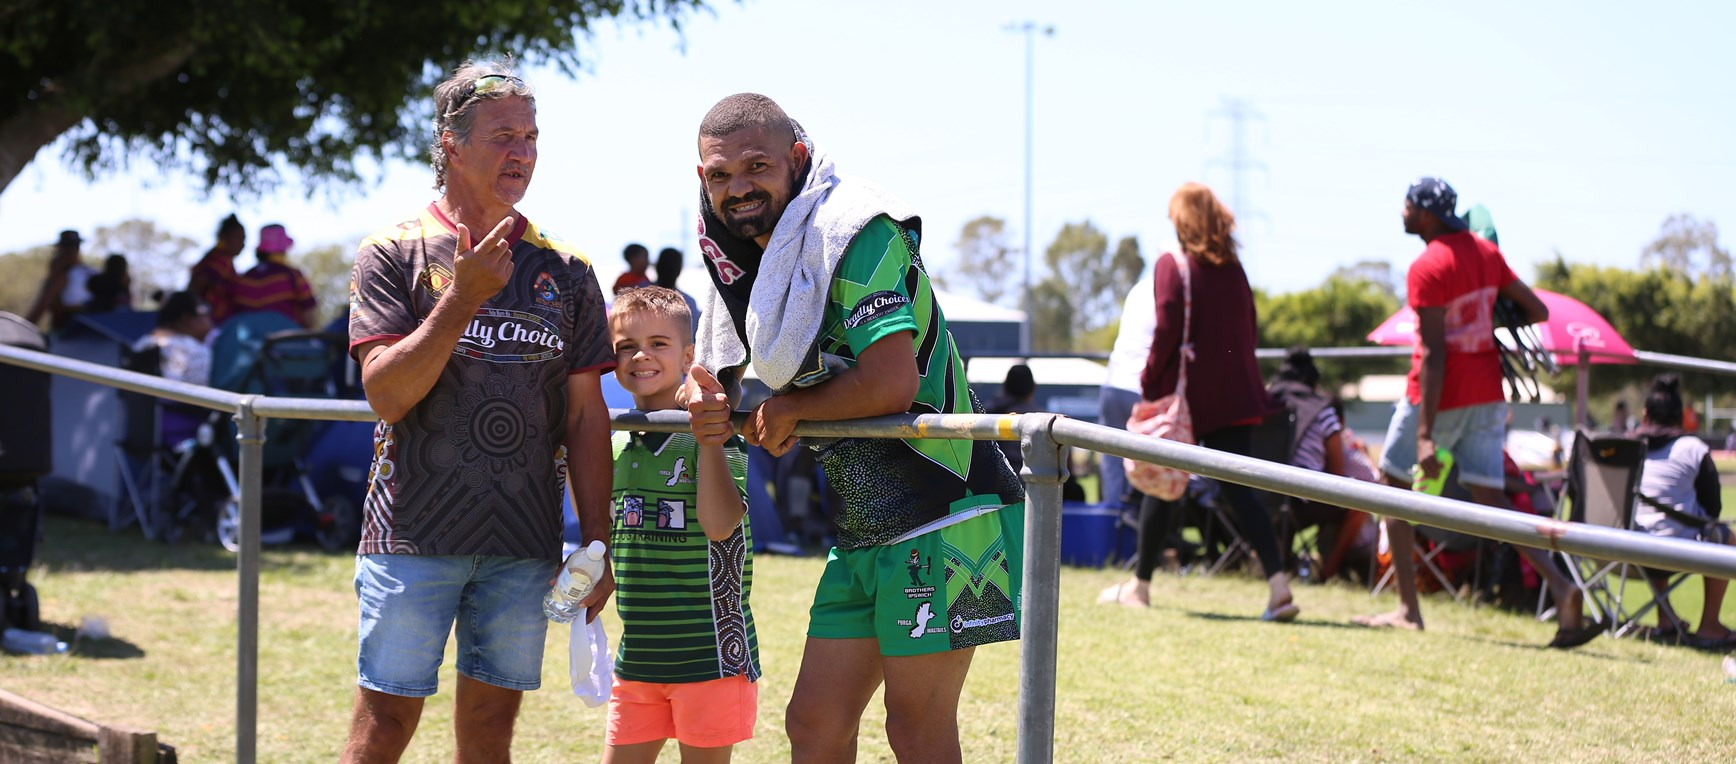 In pictures: Queensland Murri Carnival Day 3